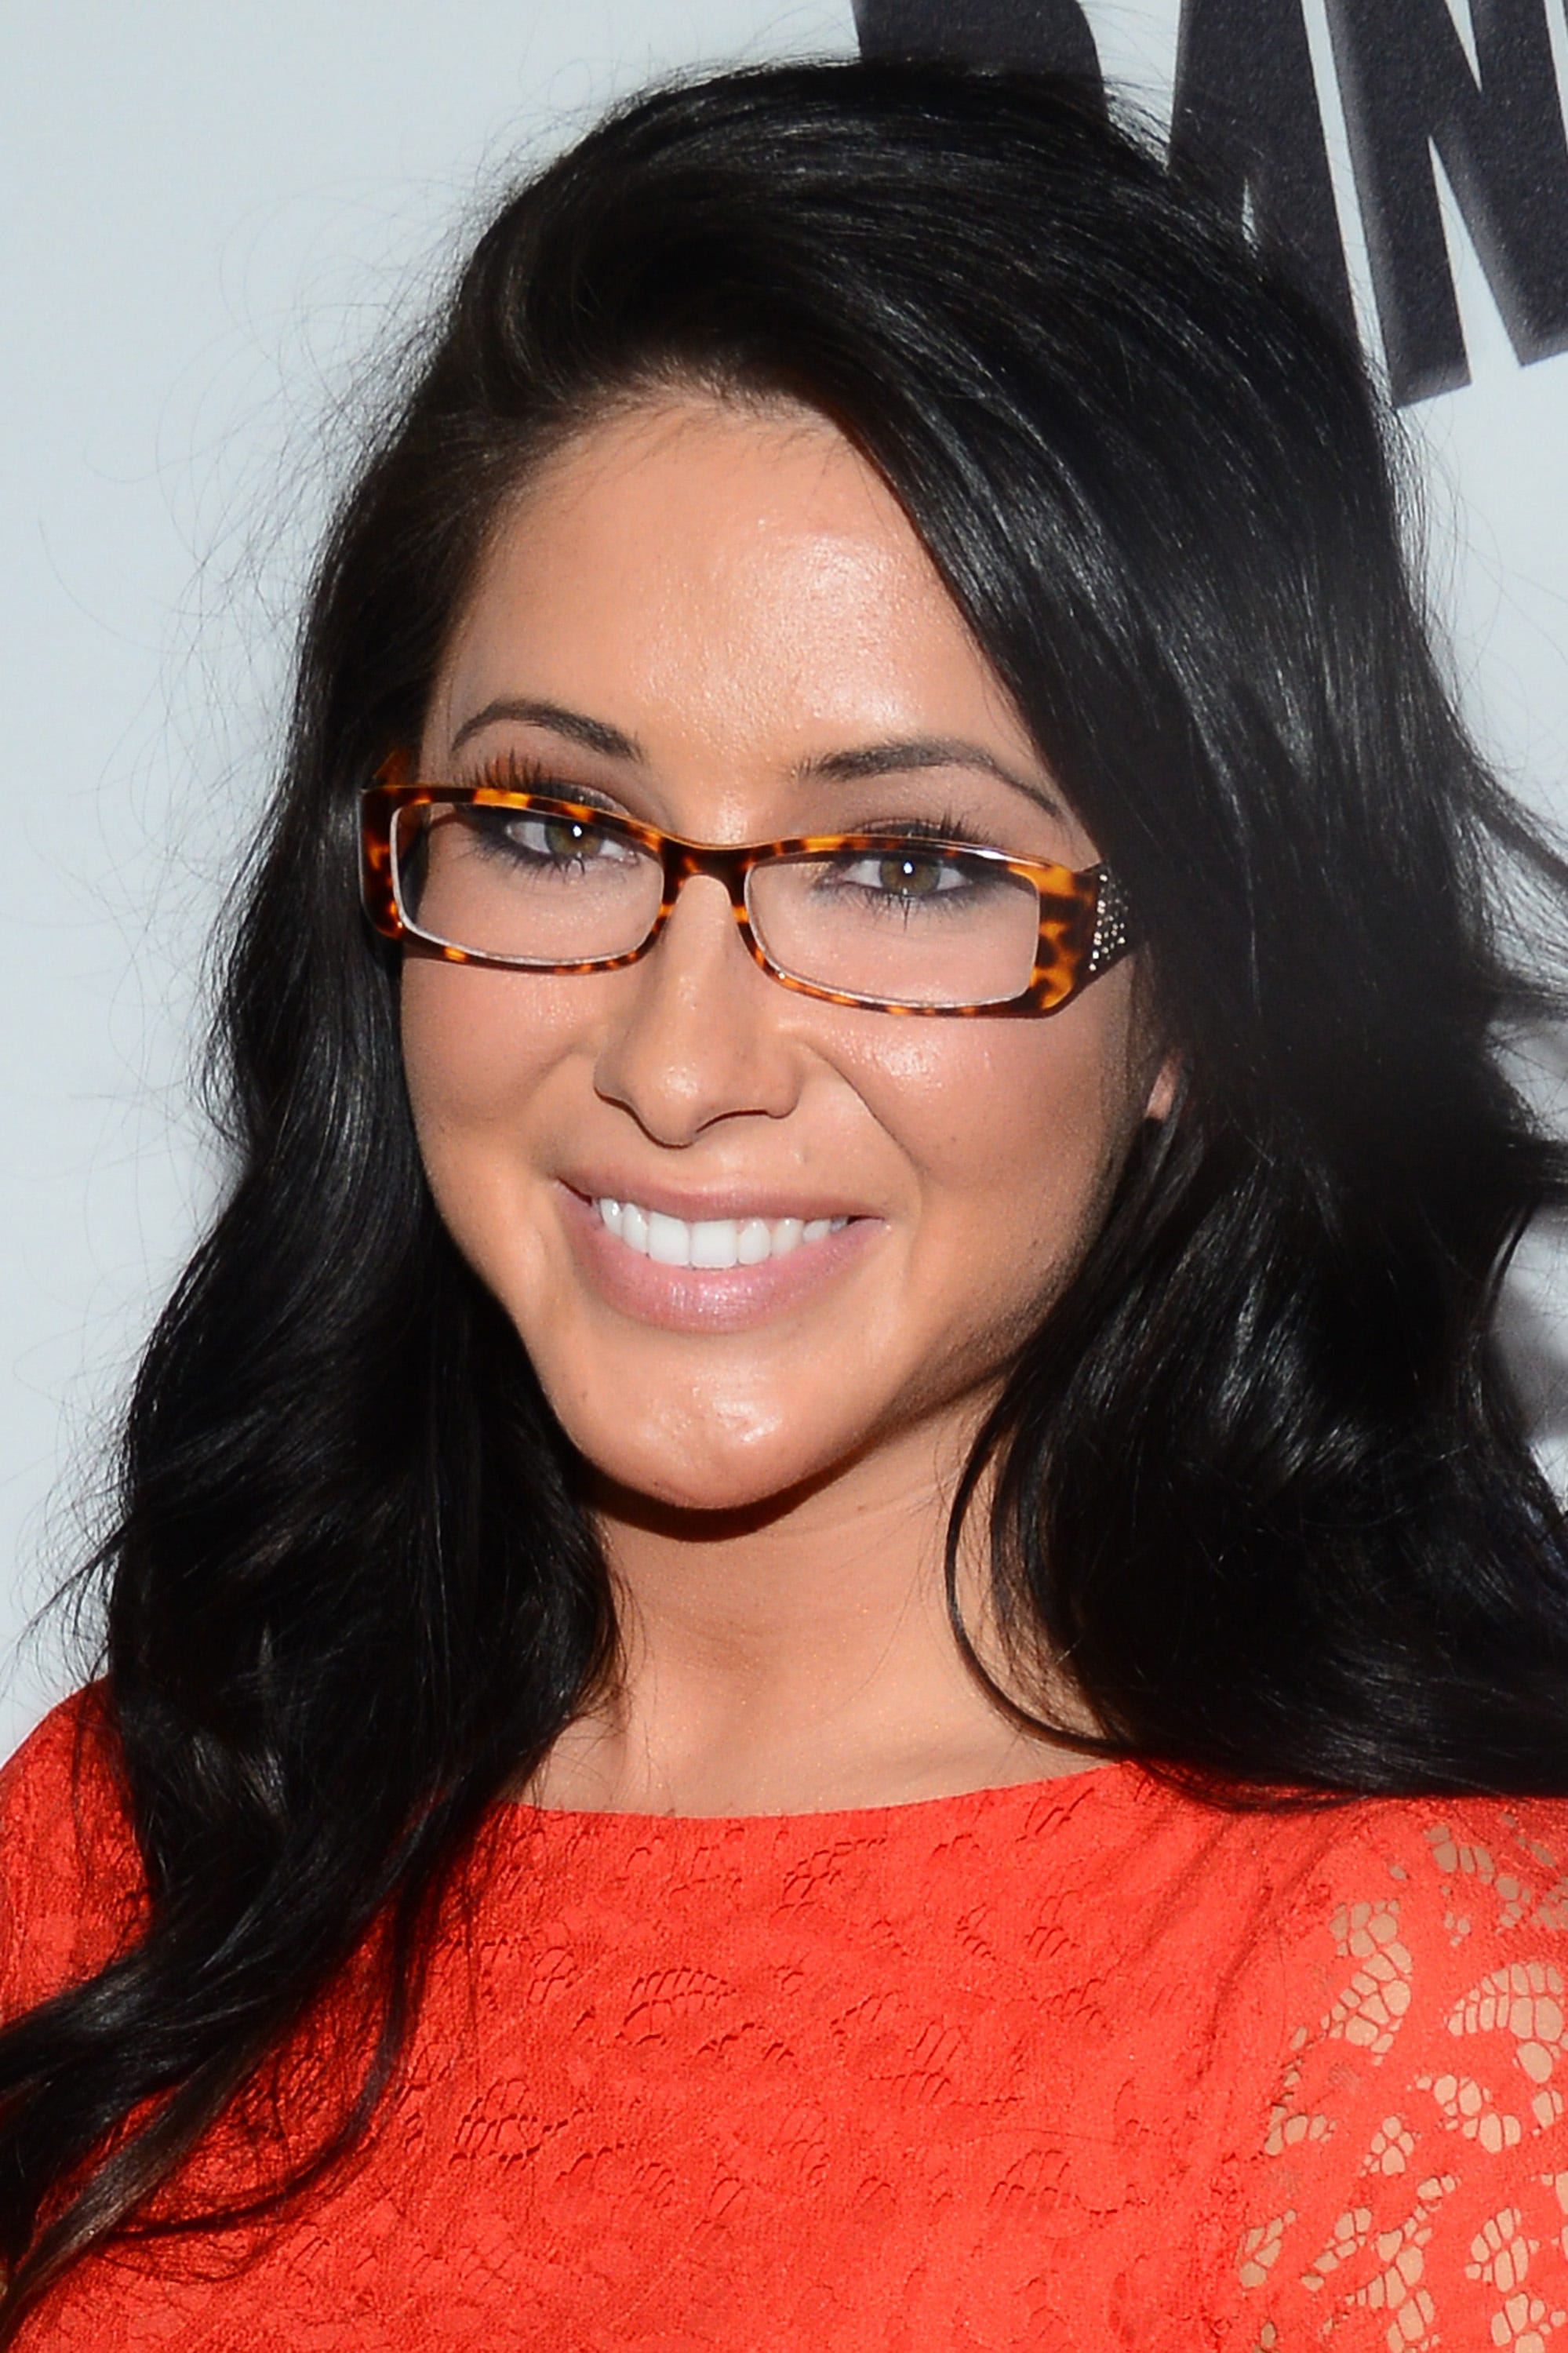 Bristol palin hookup a black man tips